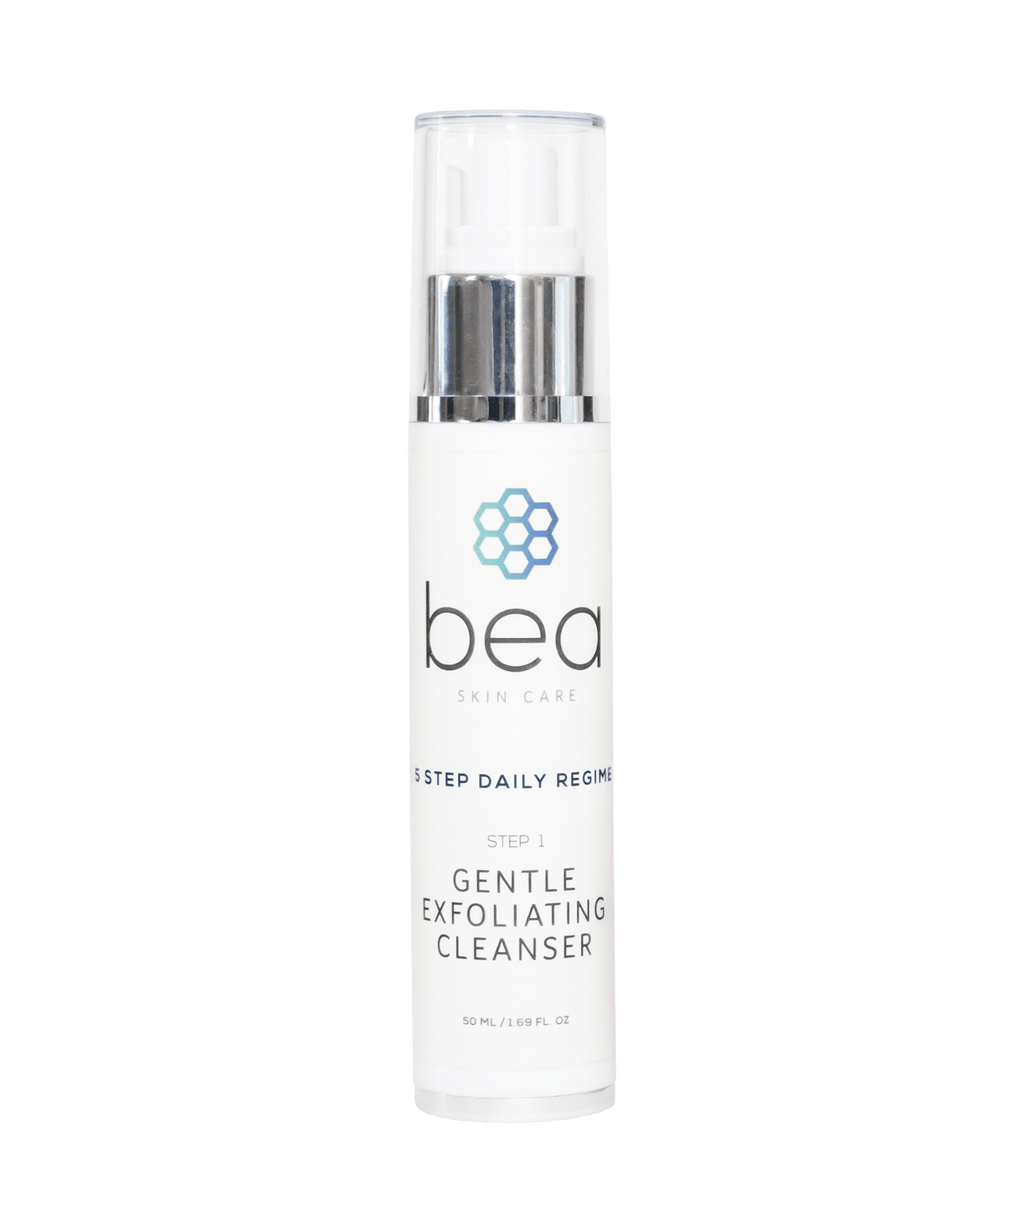 Step 1: Gentle Exfoliating Cleanser - 50 ml Cleanser bea Skin Care